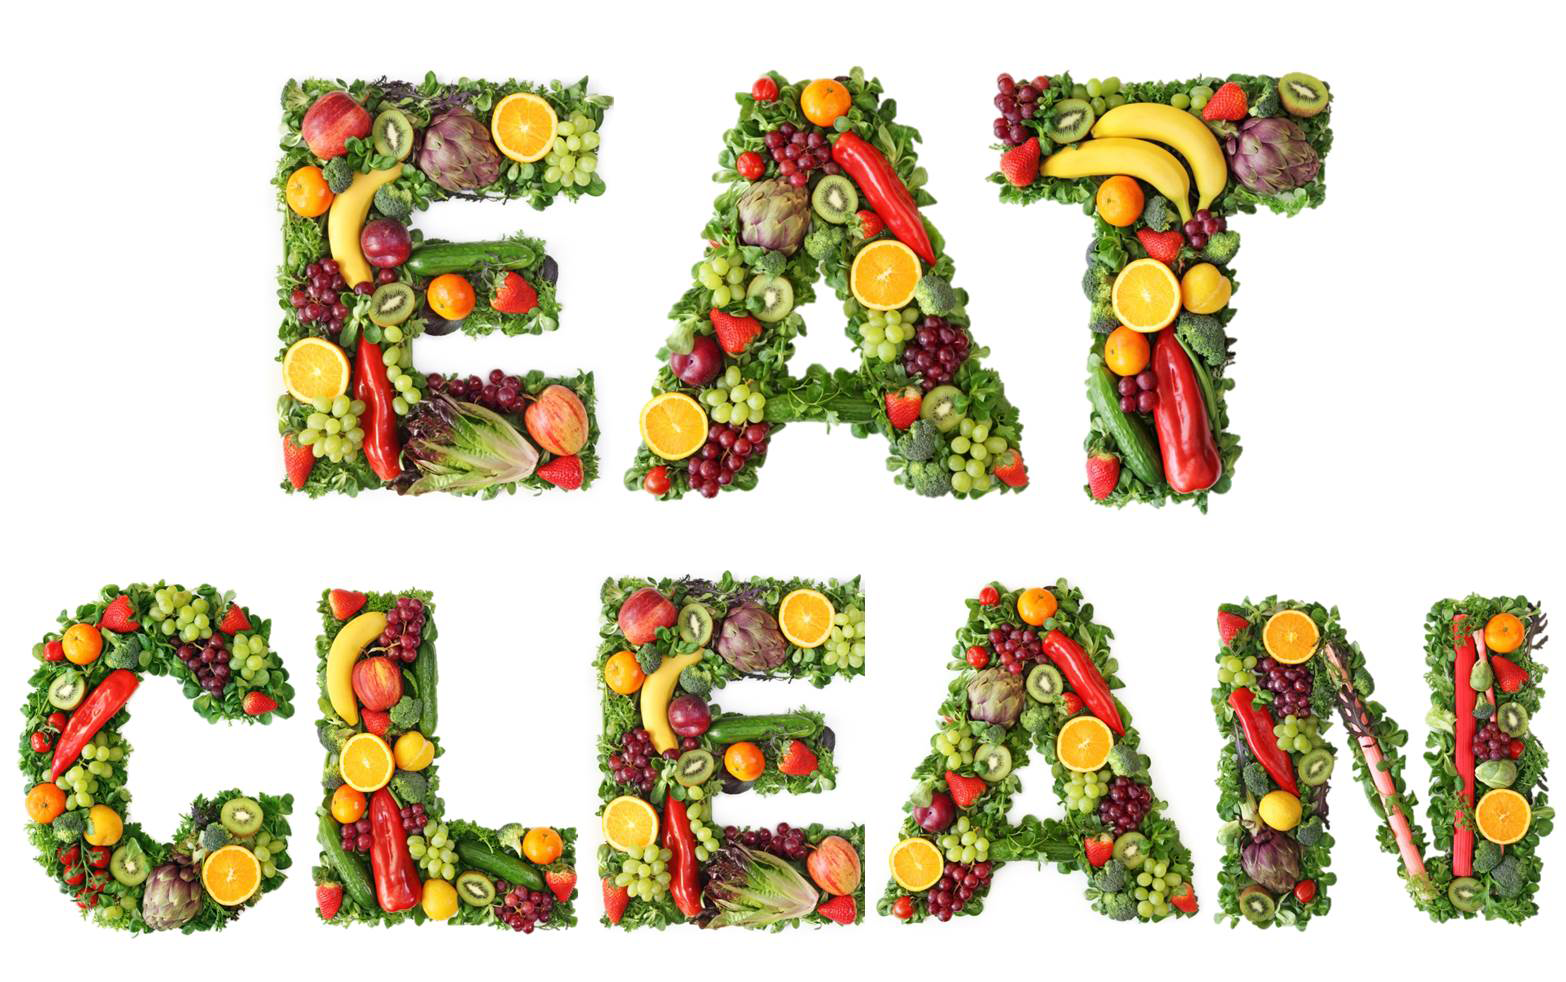 Eat clean, whole foods to help ease the symptoms of RA